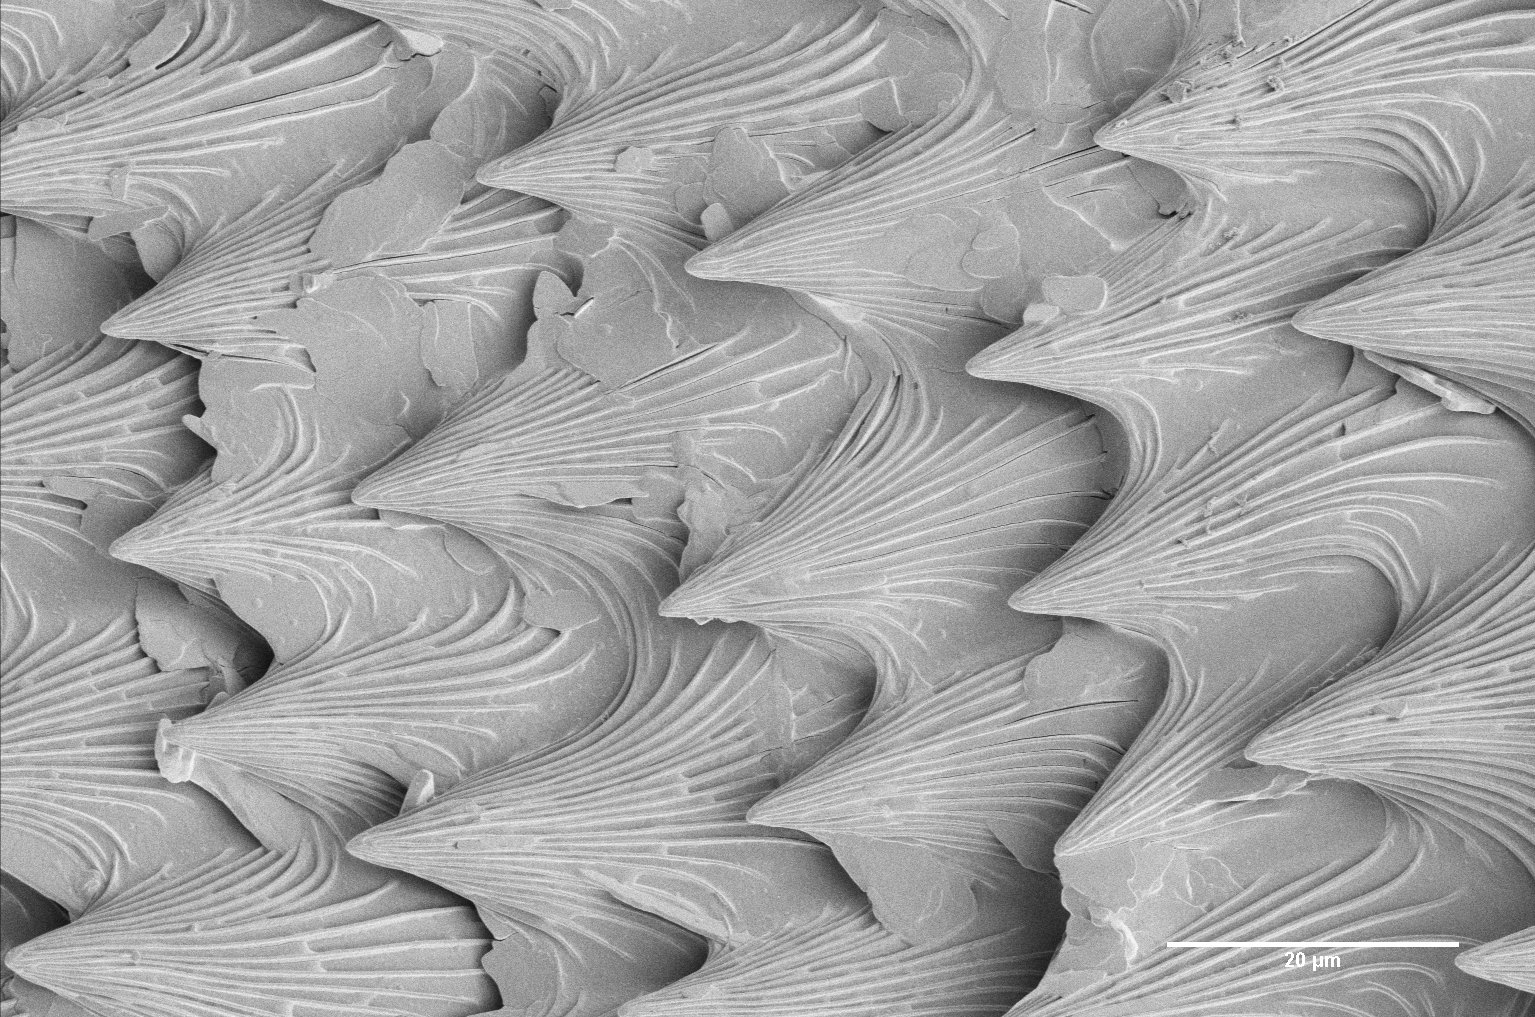 Pitcher plant, leaf surface with scales (Karin Müller, CAIC, Cambridge)